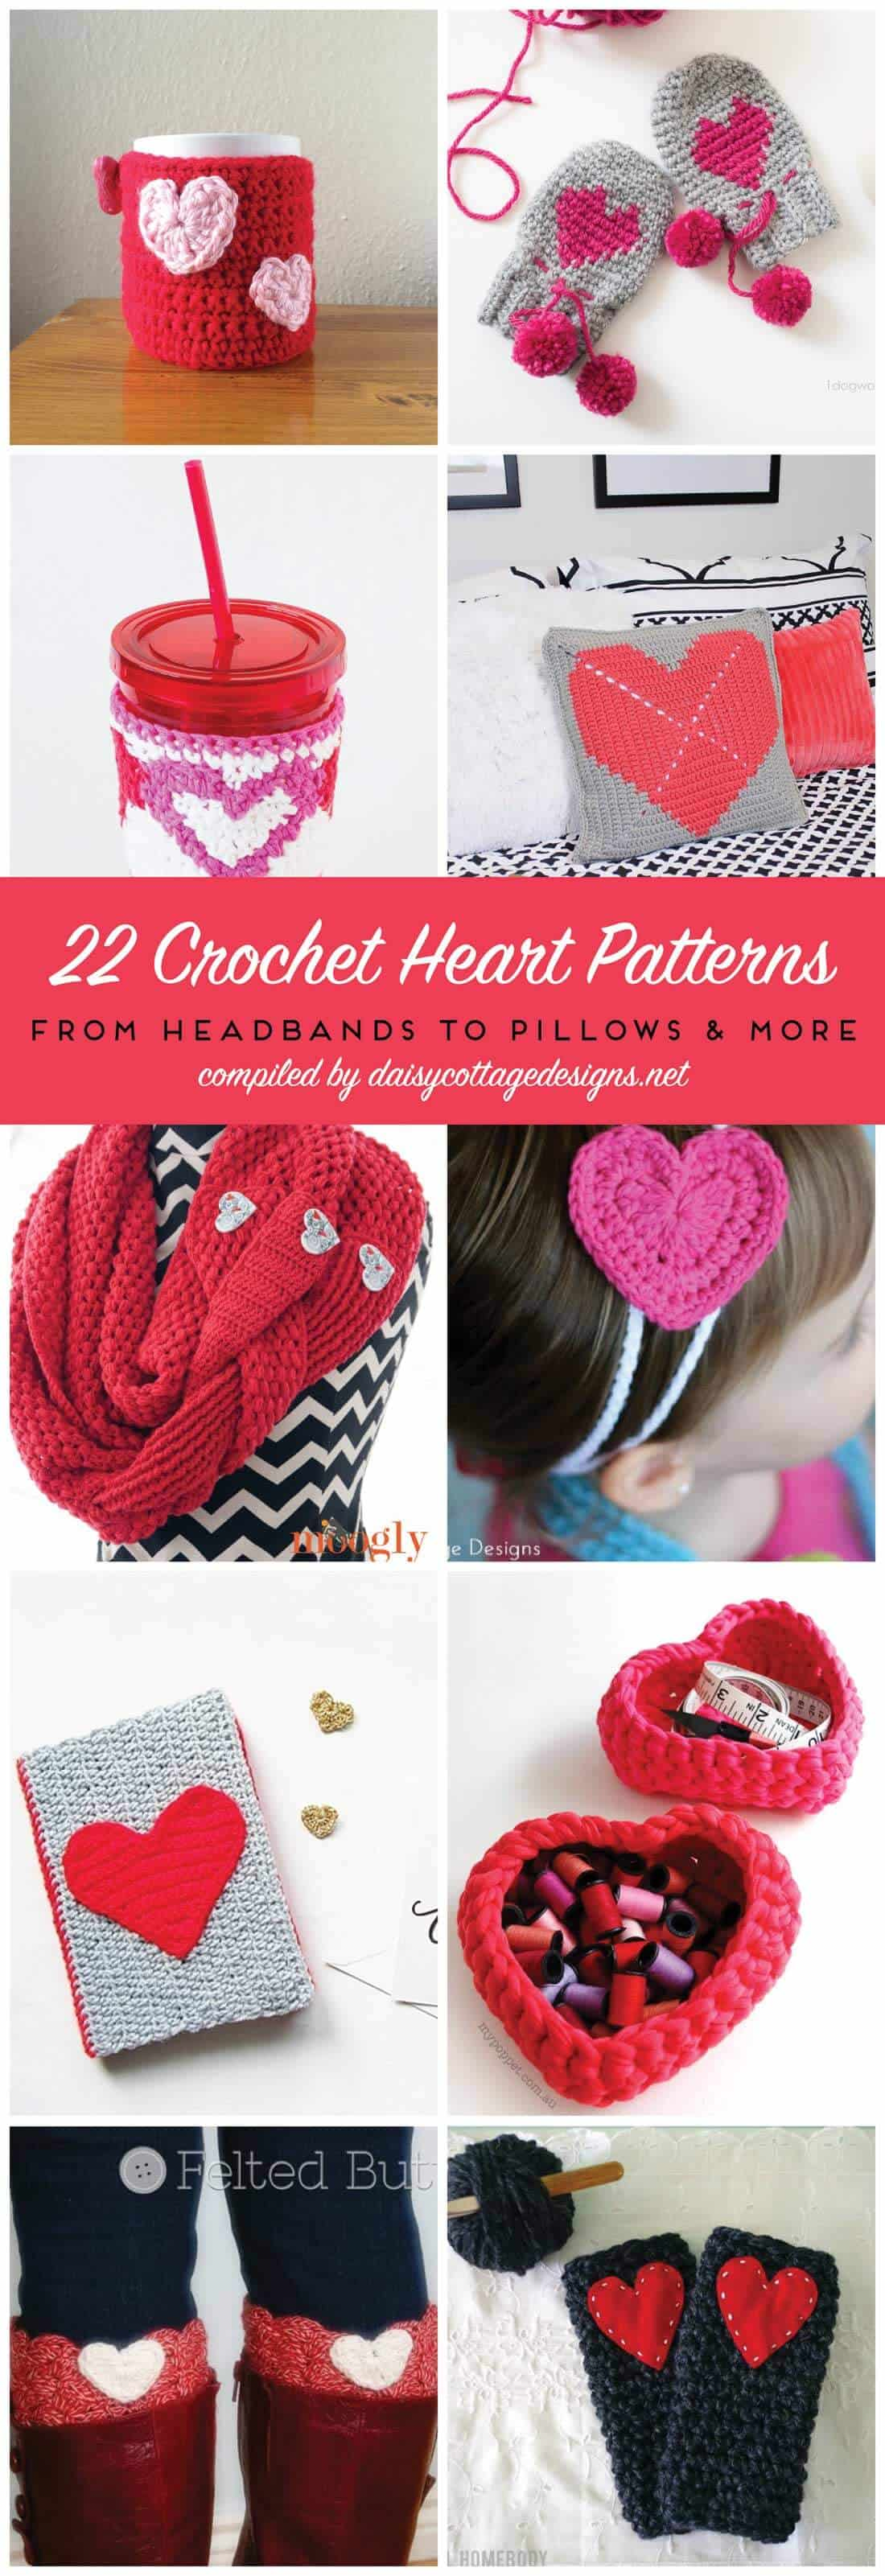 crochet heart patterns | free crochet patterns | Daisy Cottage Designs These crochet patterns make wonderful gifts for everyone on your list this Valentine's Day!